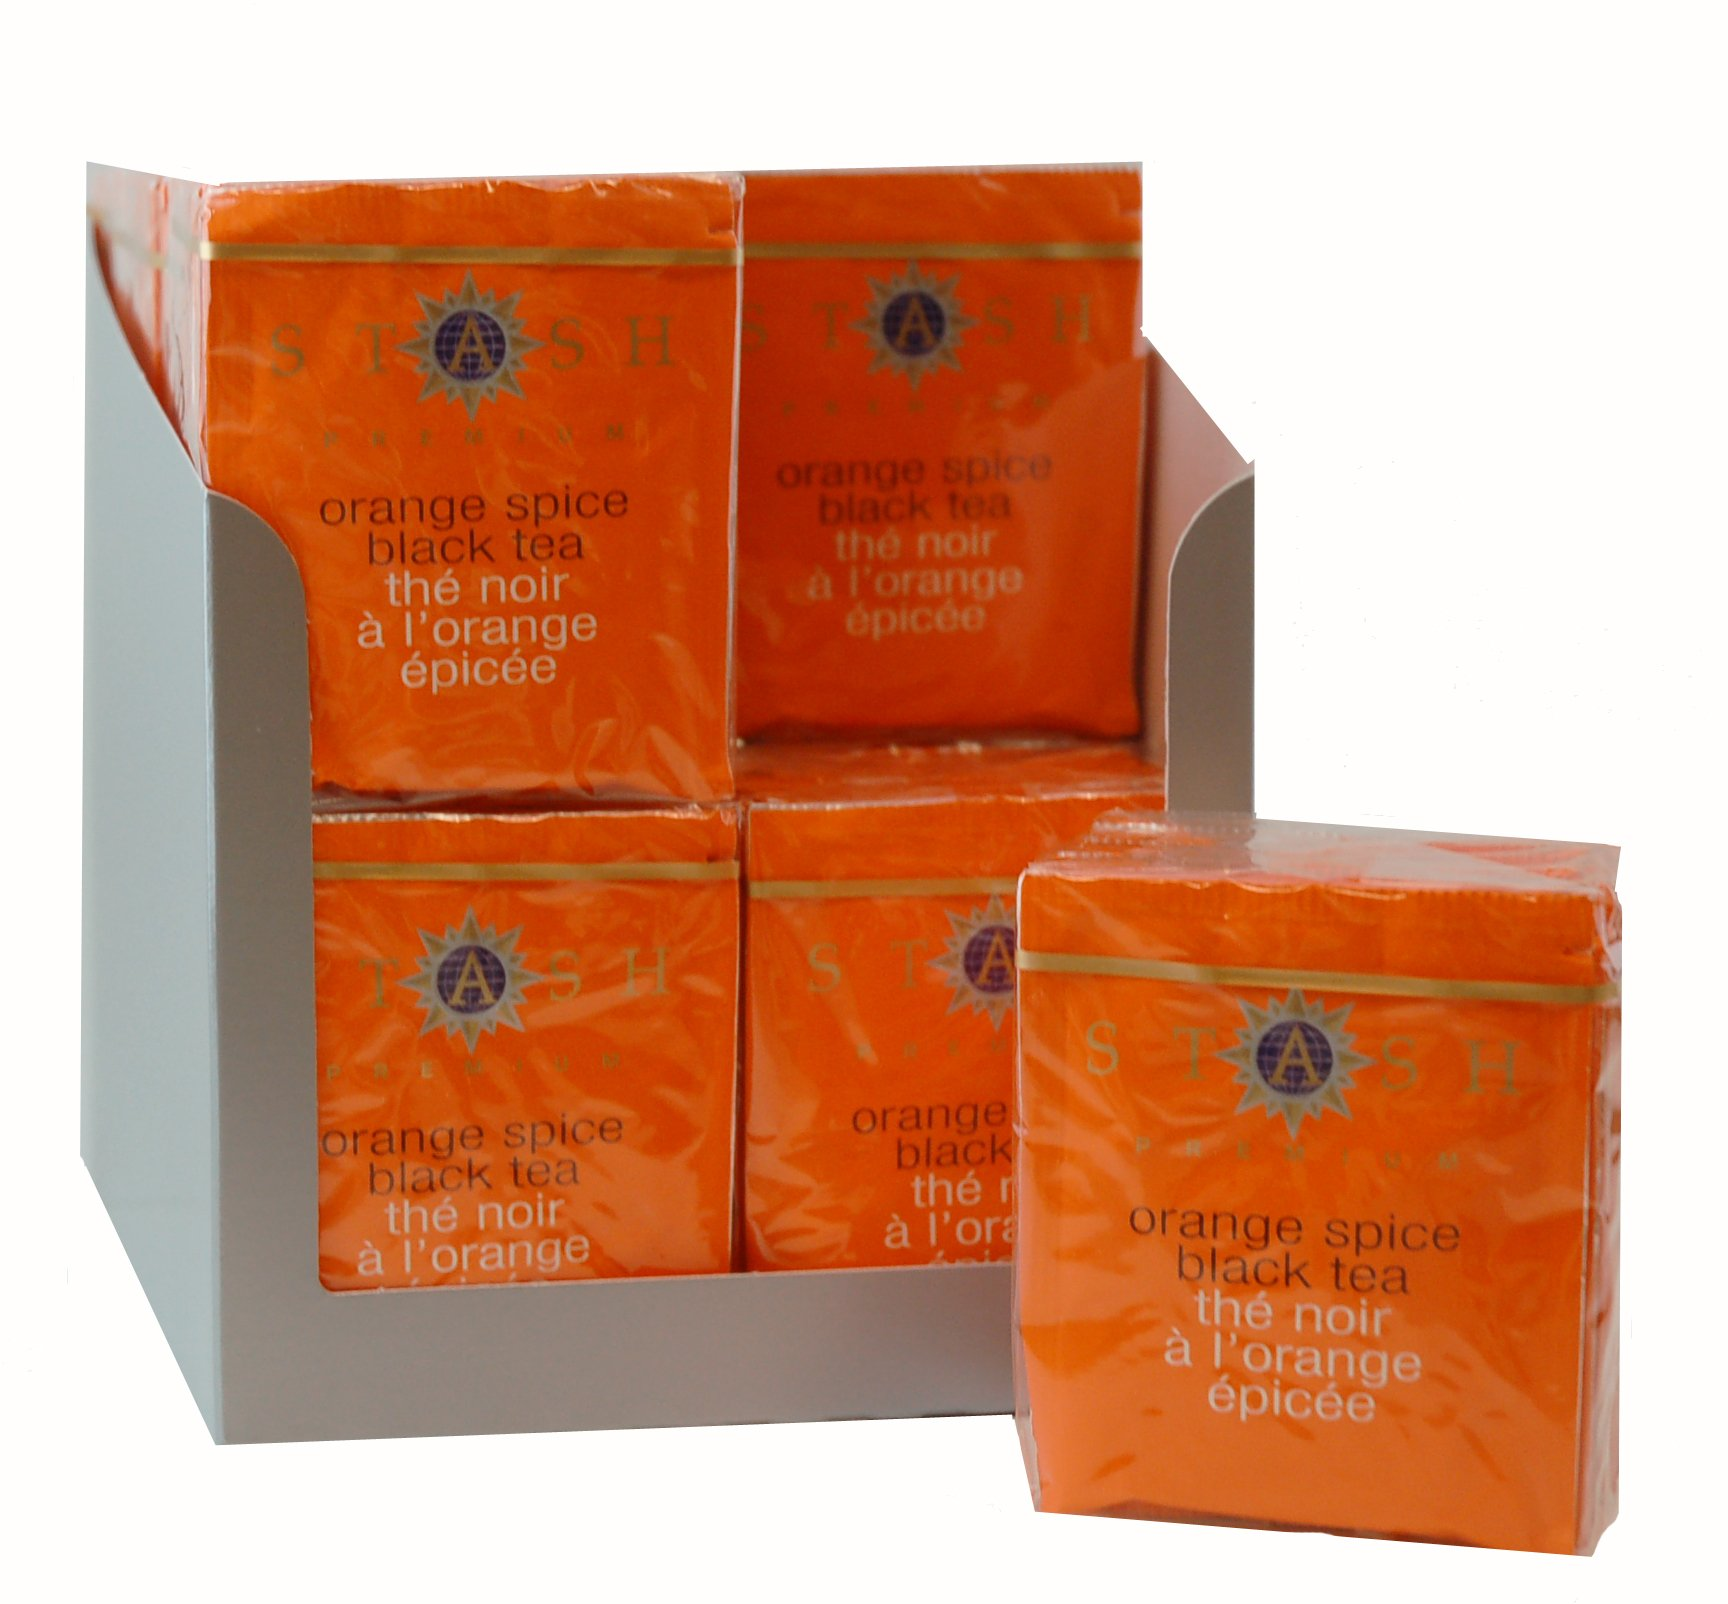 Stash Tea Orange Spice Black Tea 10 Count Tea Bags in Foil (Pack of 12) (packaging may vary) Individual Black Tea Bags for Use in Teapots Mugs or Cups, Brew Hot Tea or Iced Tea by Stash Tea (Image #1)